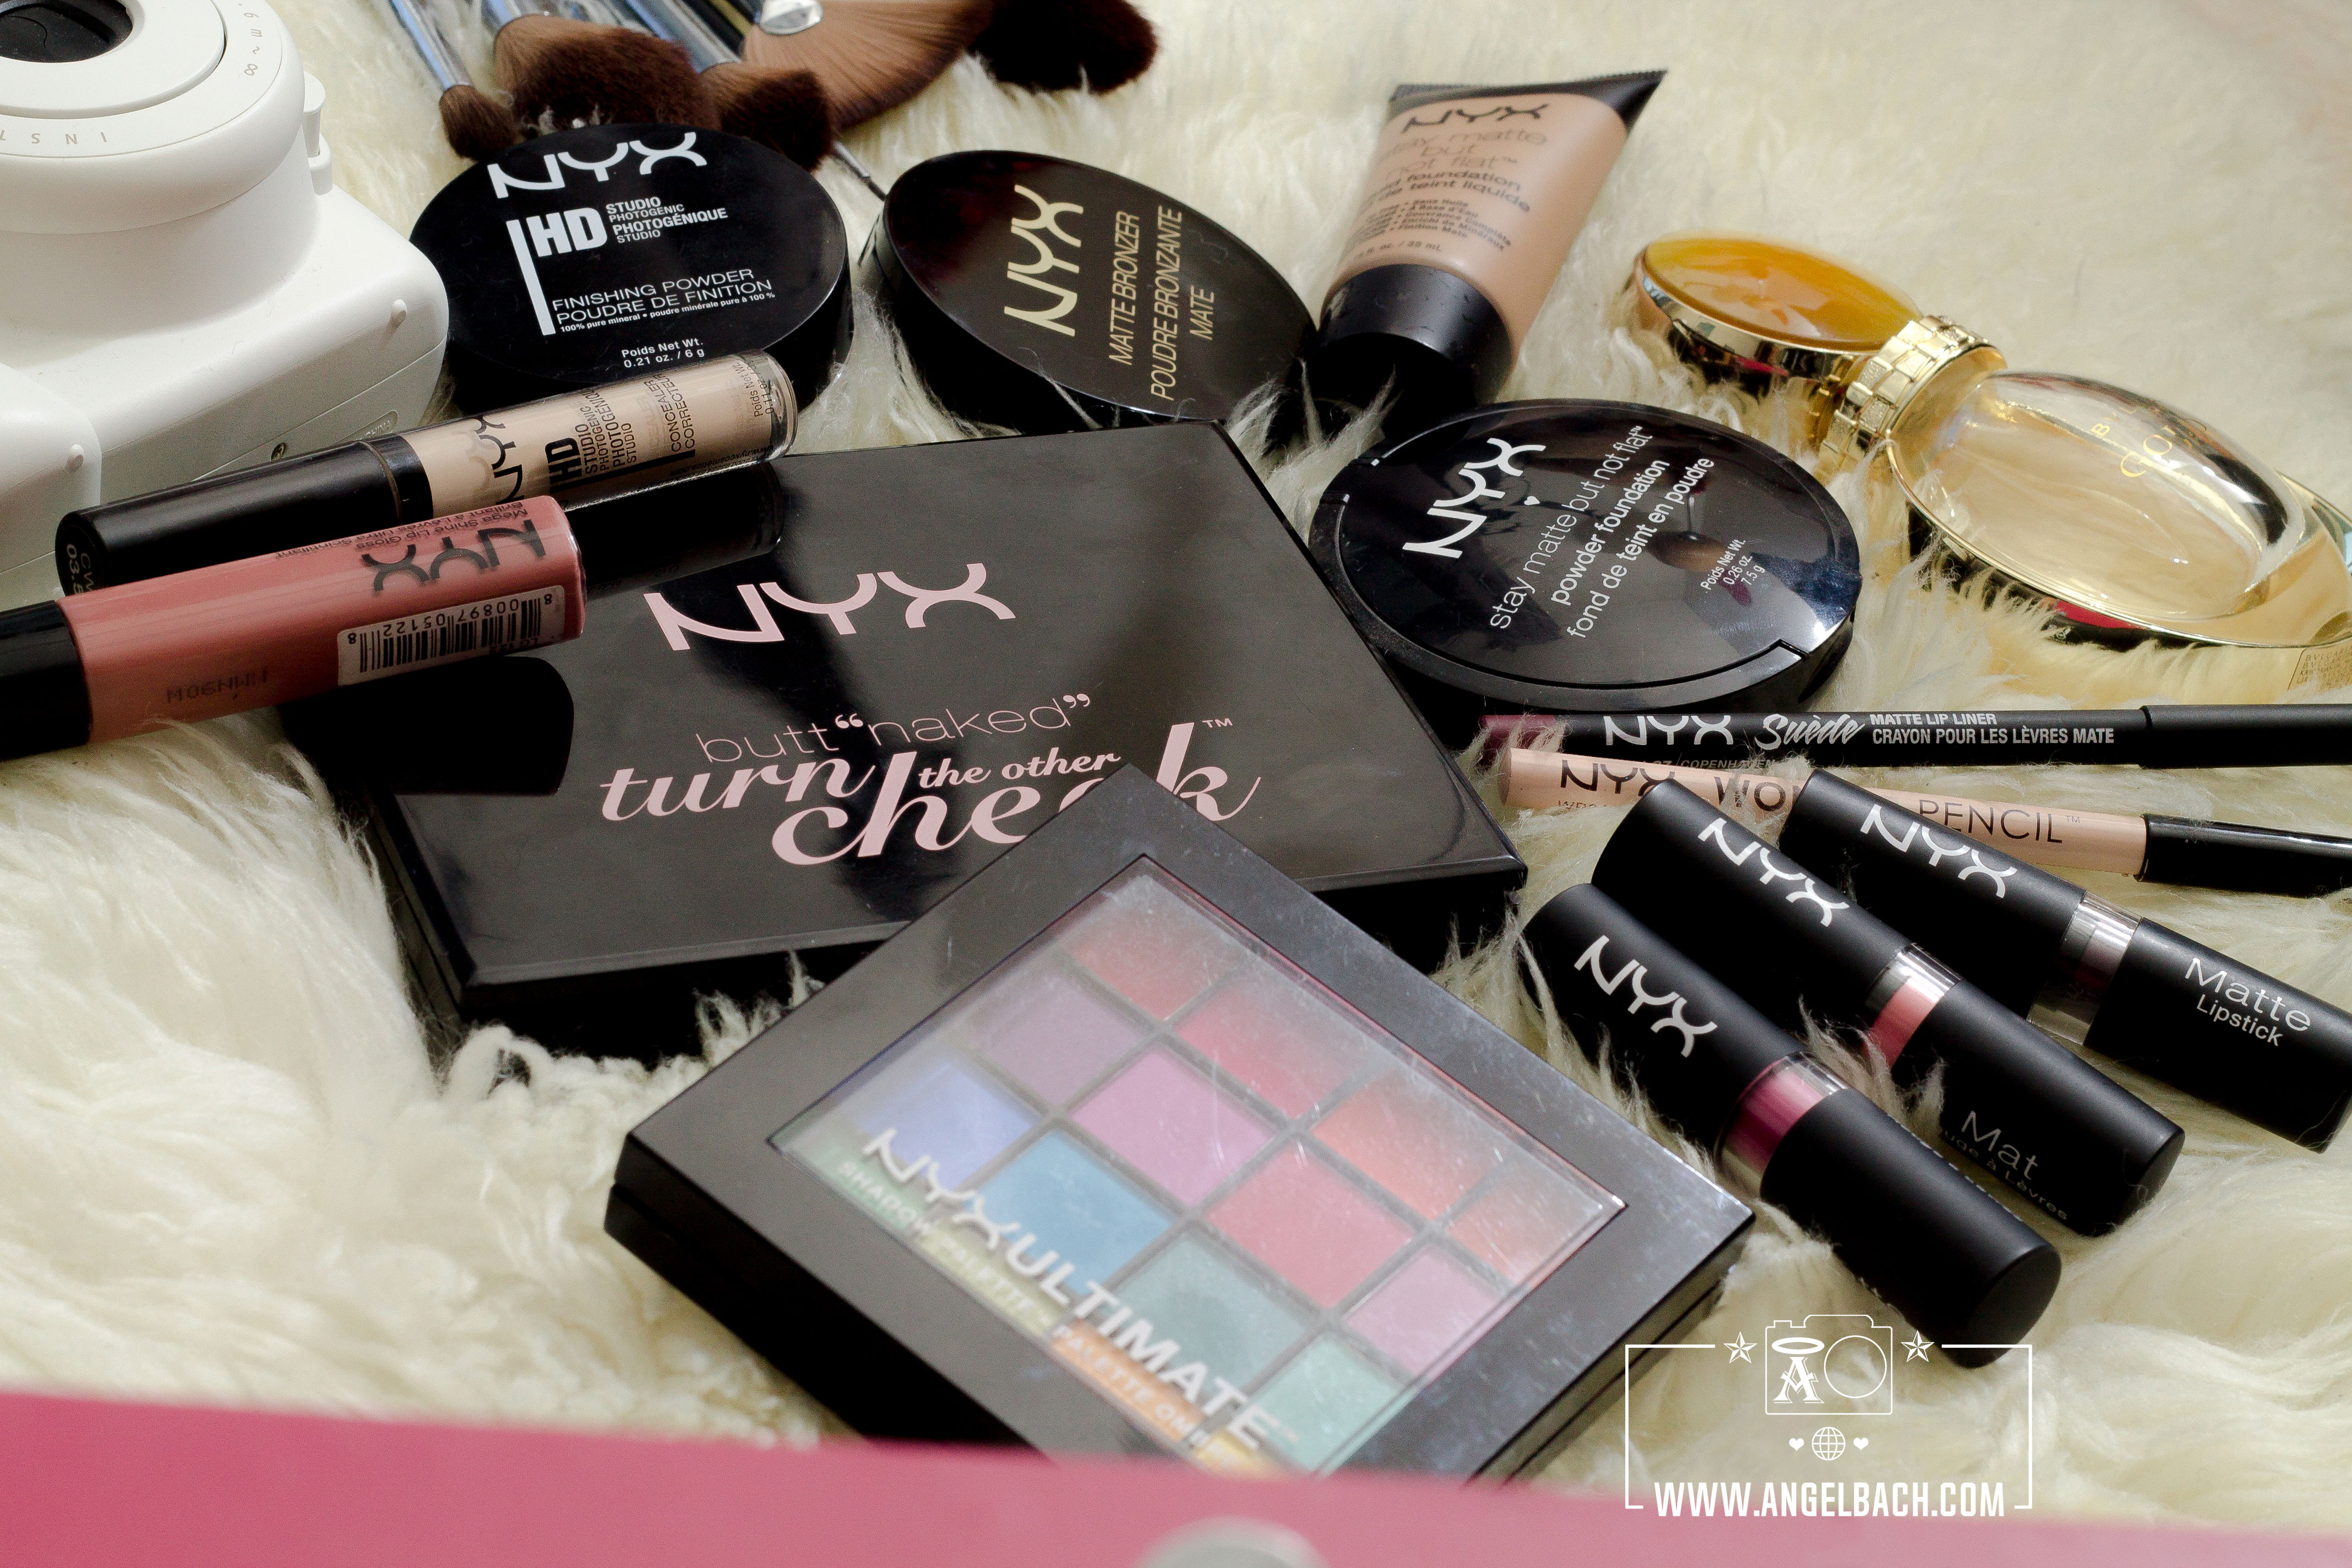 Product Photography, Make-up Artist, NYX Cosmetics, NYX Professional Make-up, Nyx Foundation, Nyx lipsticks, Nyx Concealer, Nyx pallette, Nexy loose powder, Nyx Bronzer, Brushes, Nyx Powder, Bvulgari, Intax, Make-up Kit